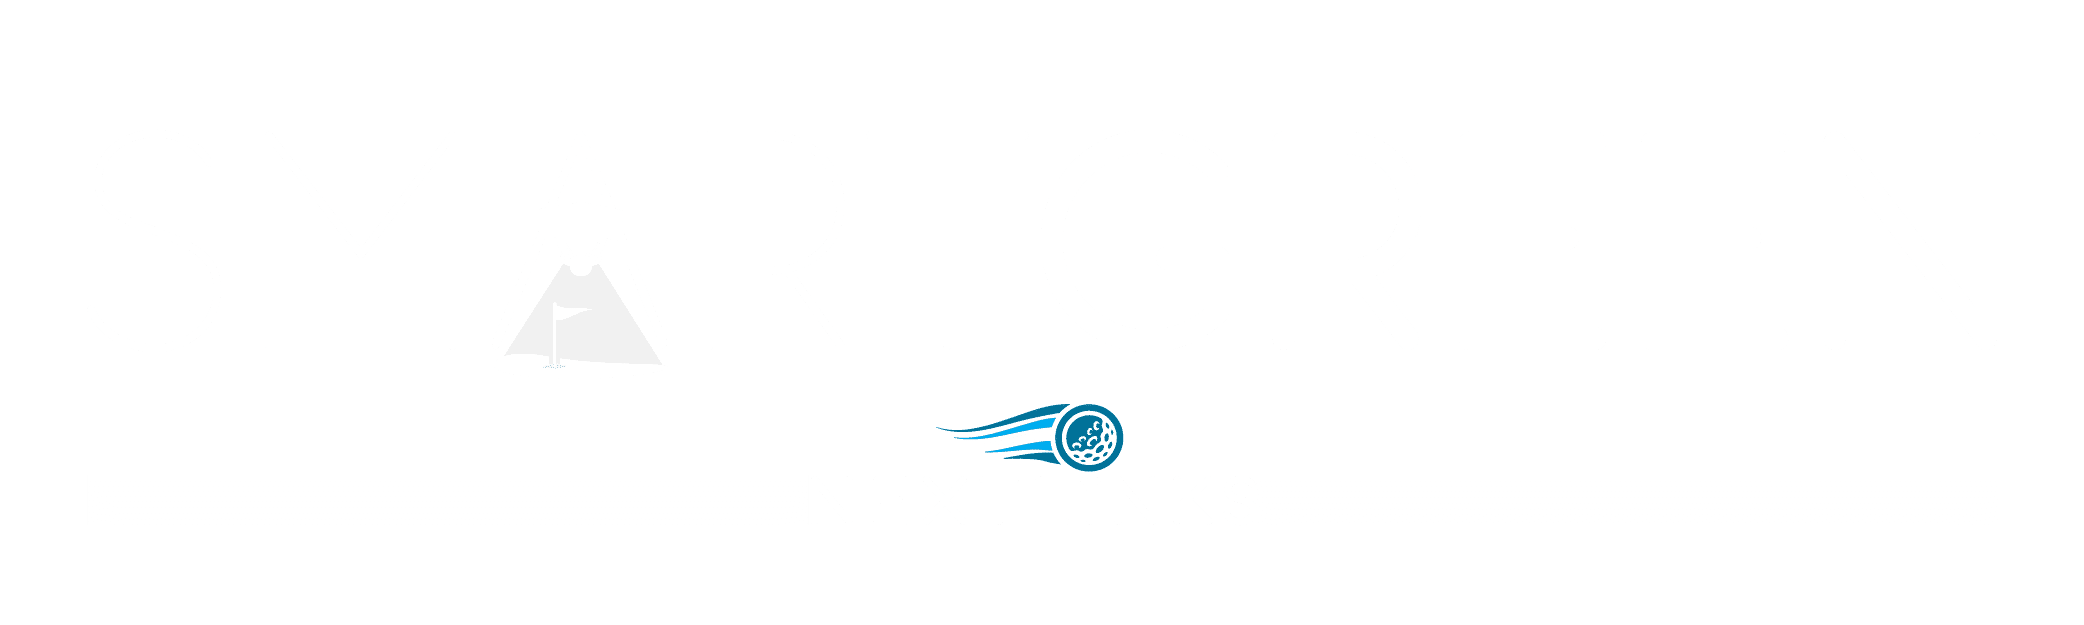 SmartGreen by Nextlinks Logo white 01 1